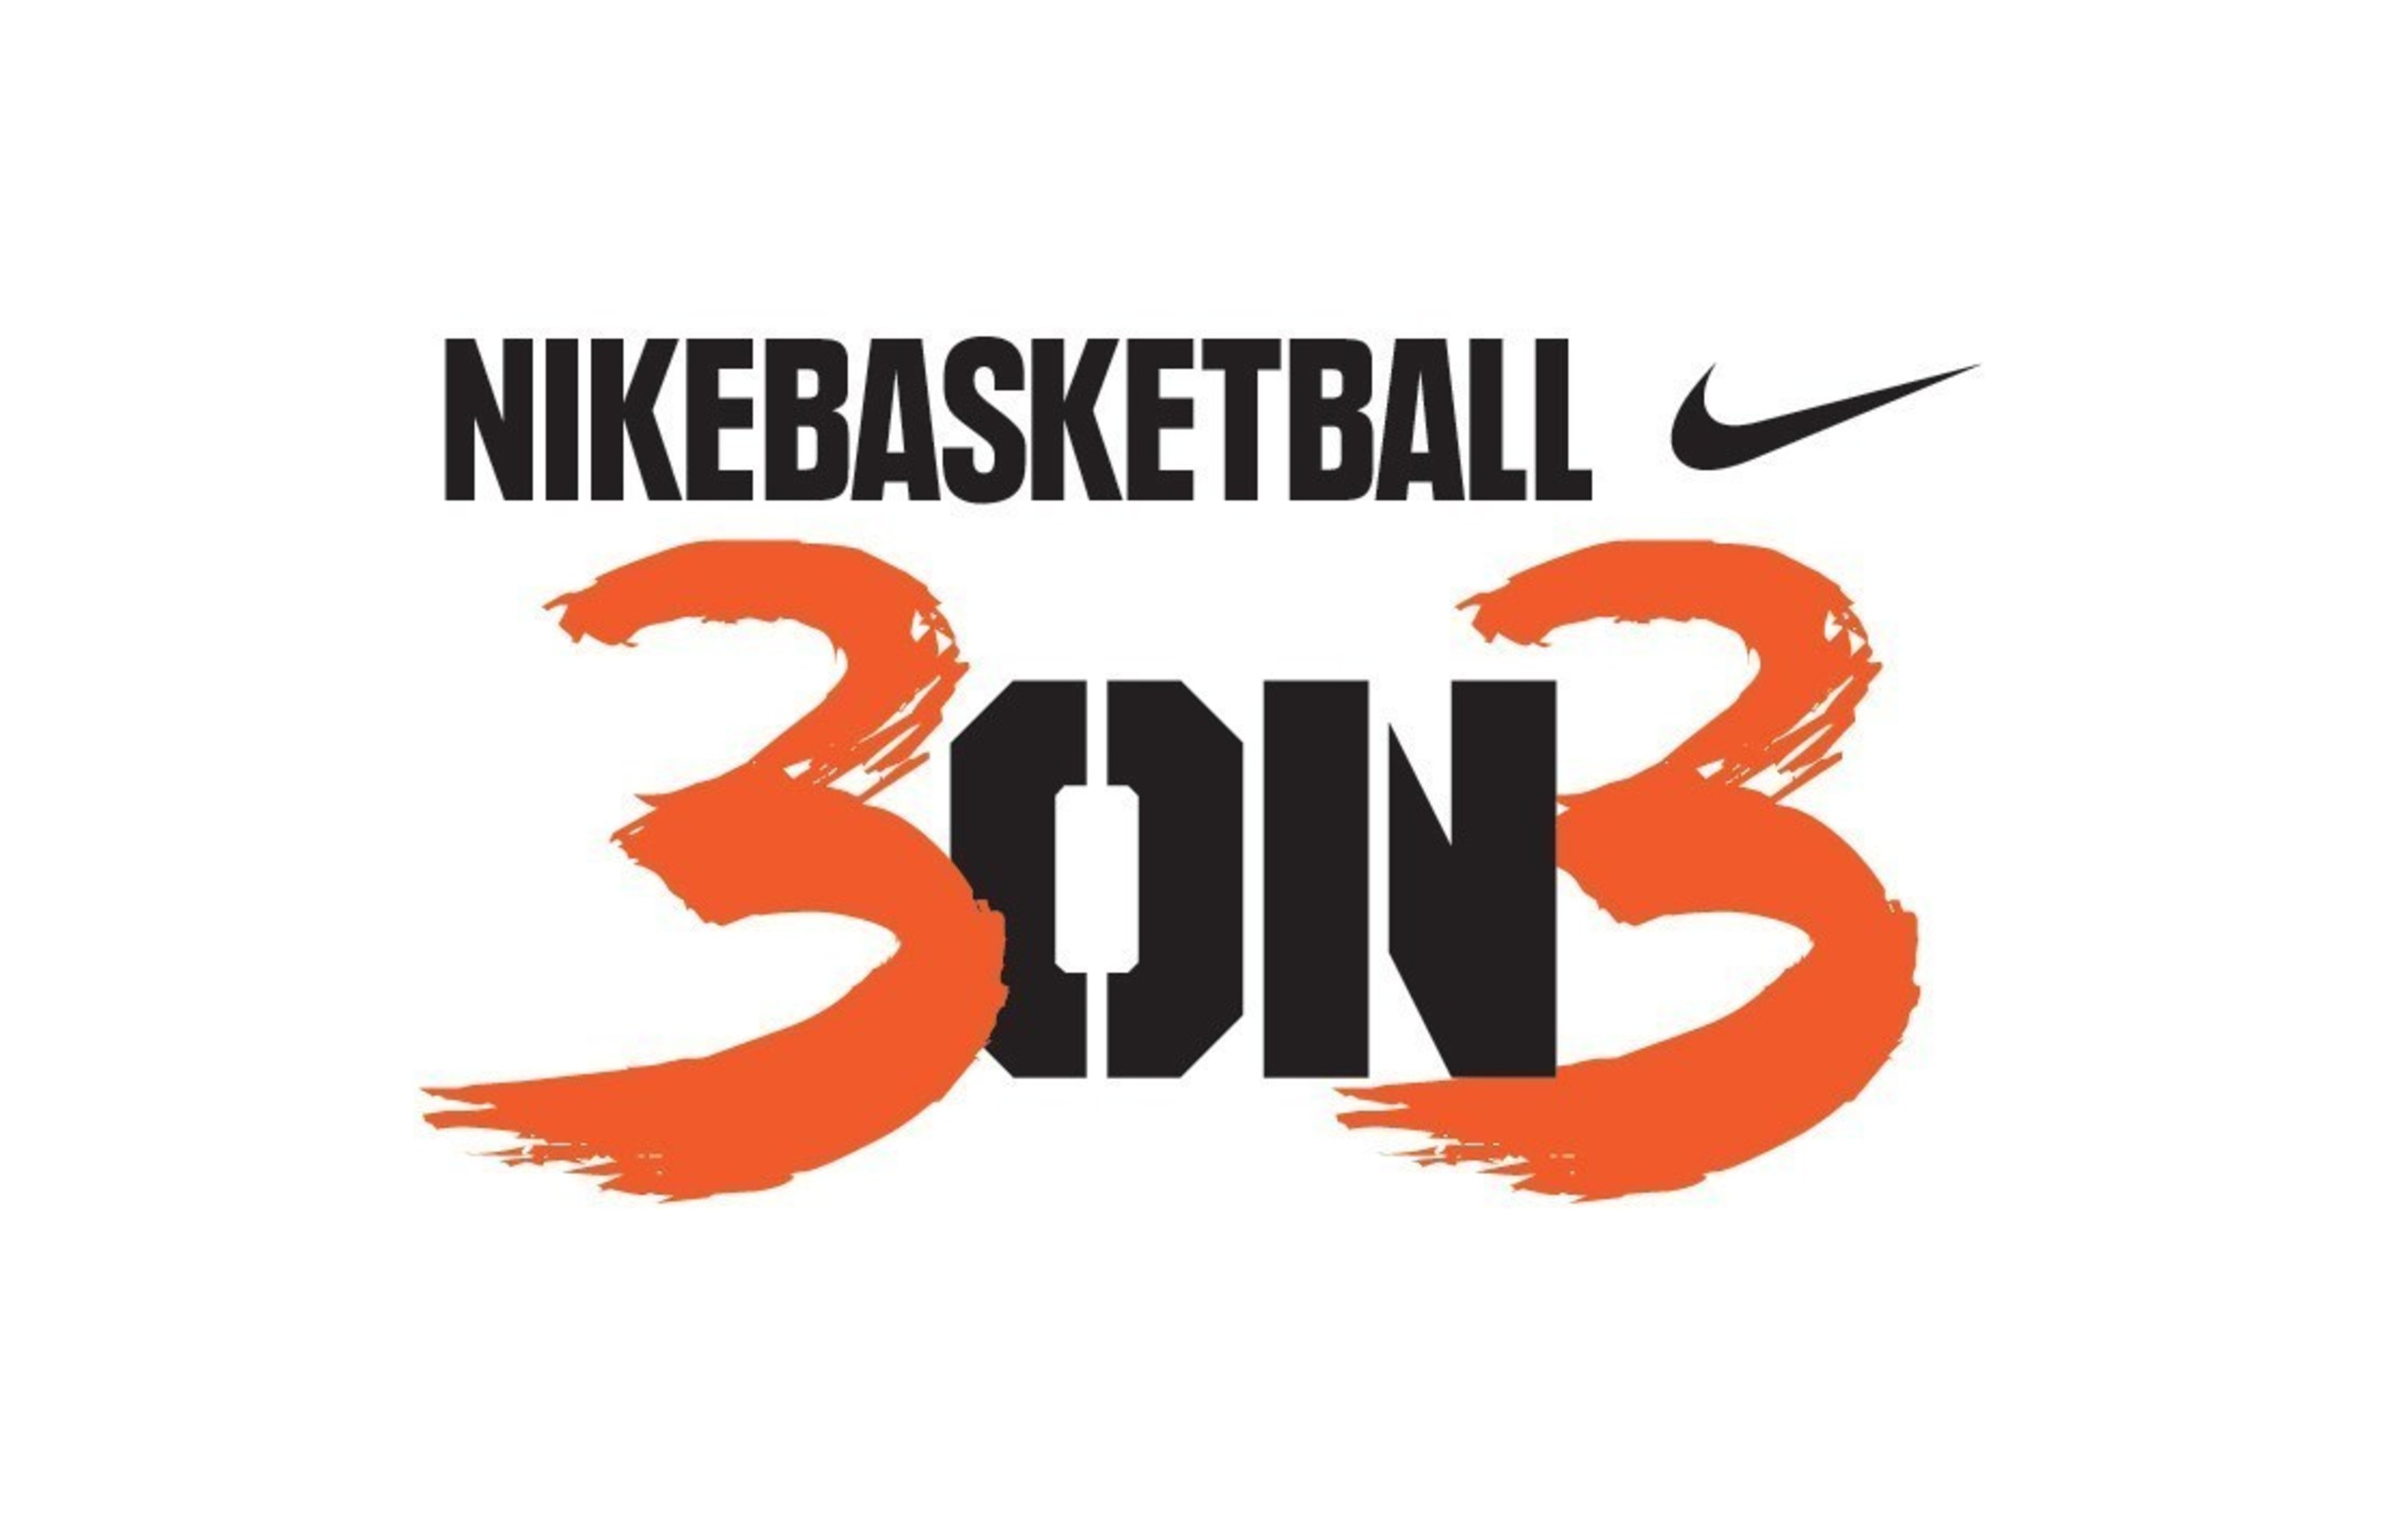 buy popular 0de0f a9840 Eighth Annual Nike Basketball 3ON3 Tournament Returns To L.A. Live, August  5-7